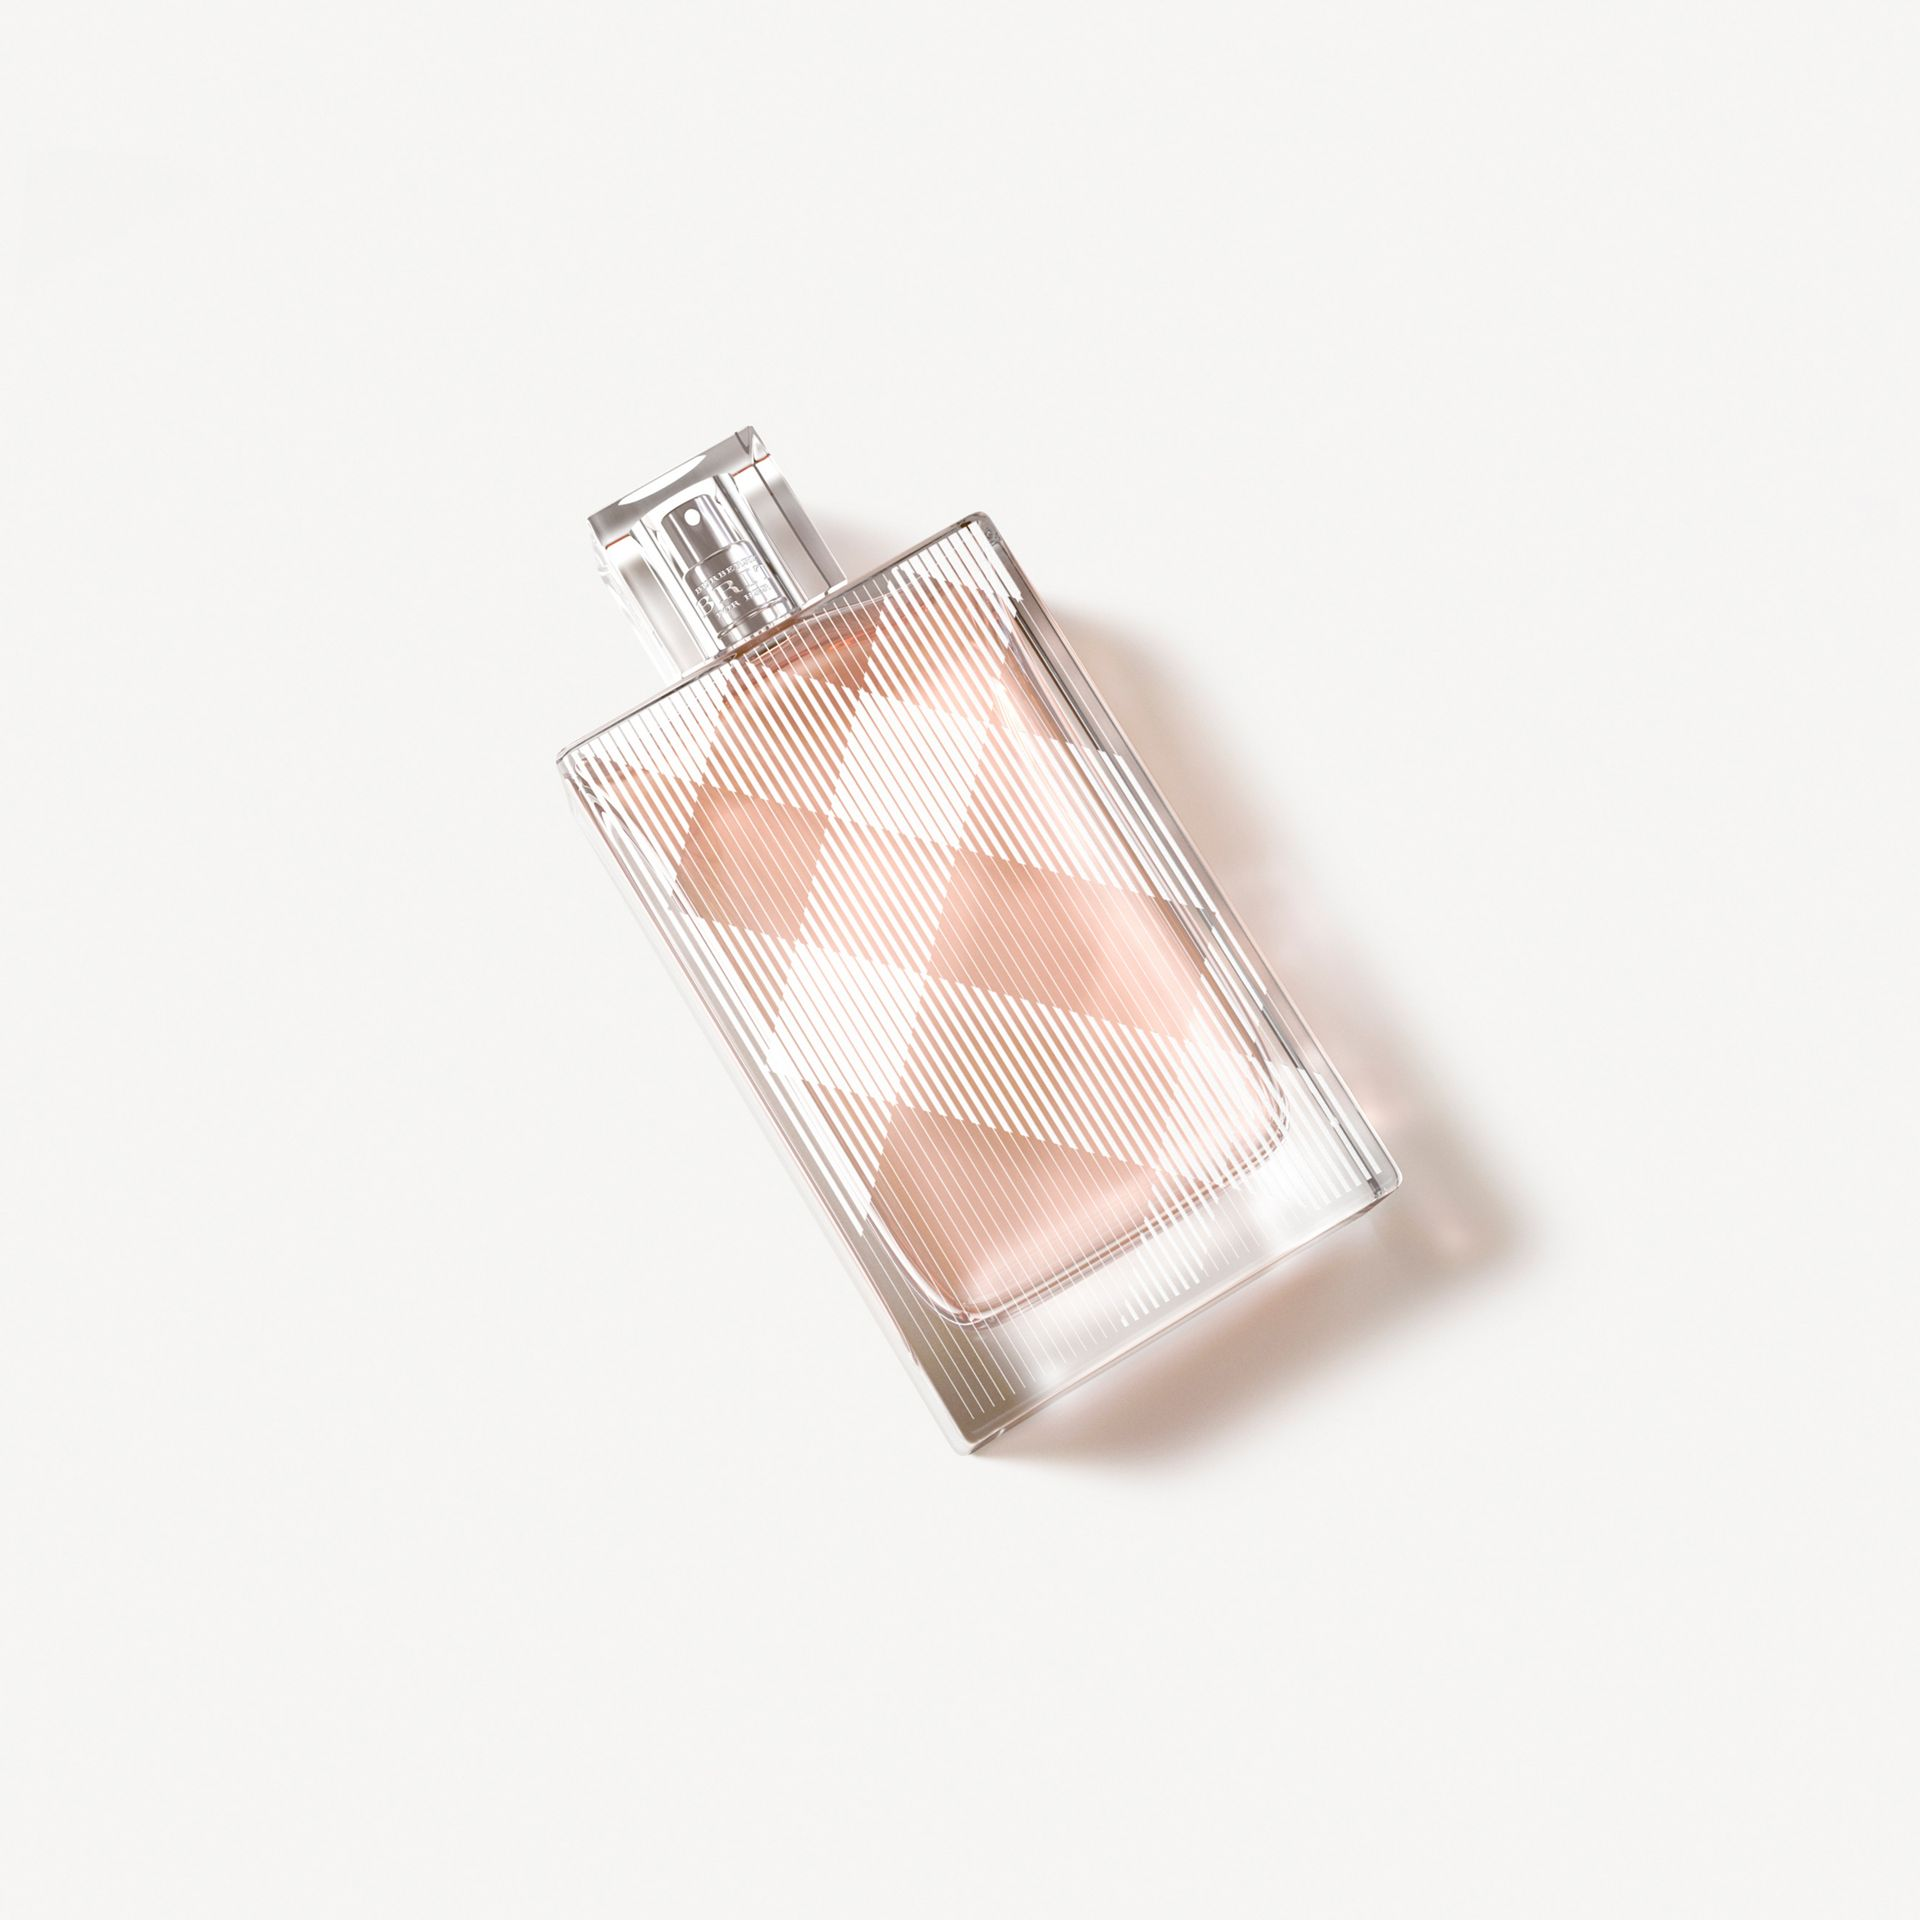 Burberry Brit For Her Eau de Toilette 100ml - Women | Burberry - gallery image 1